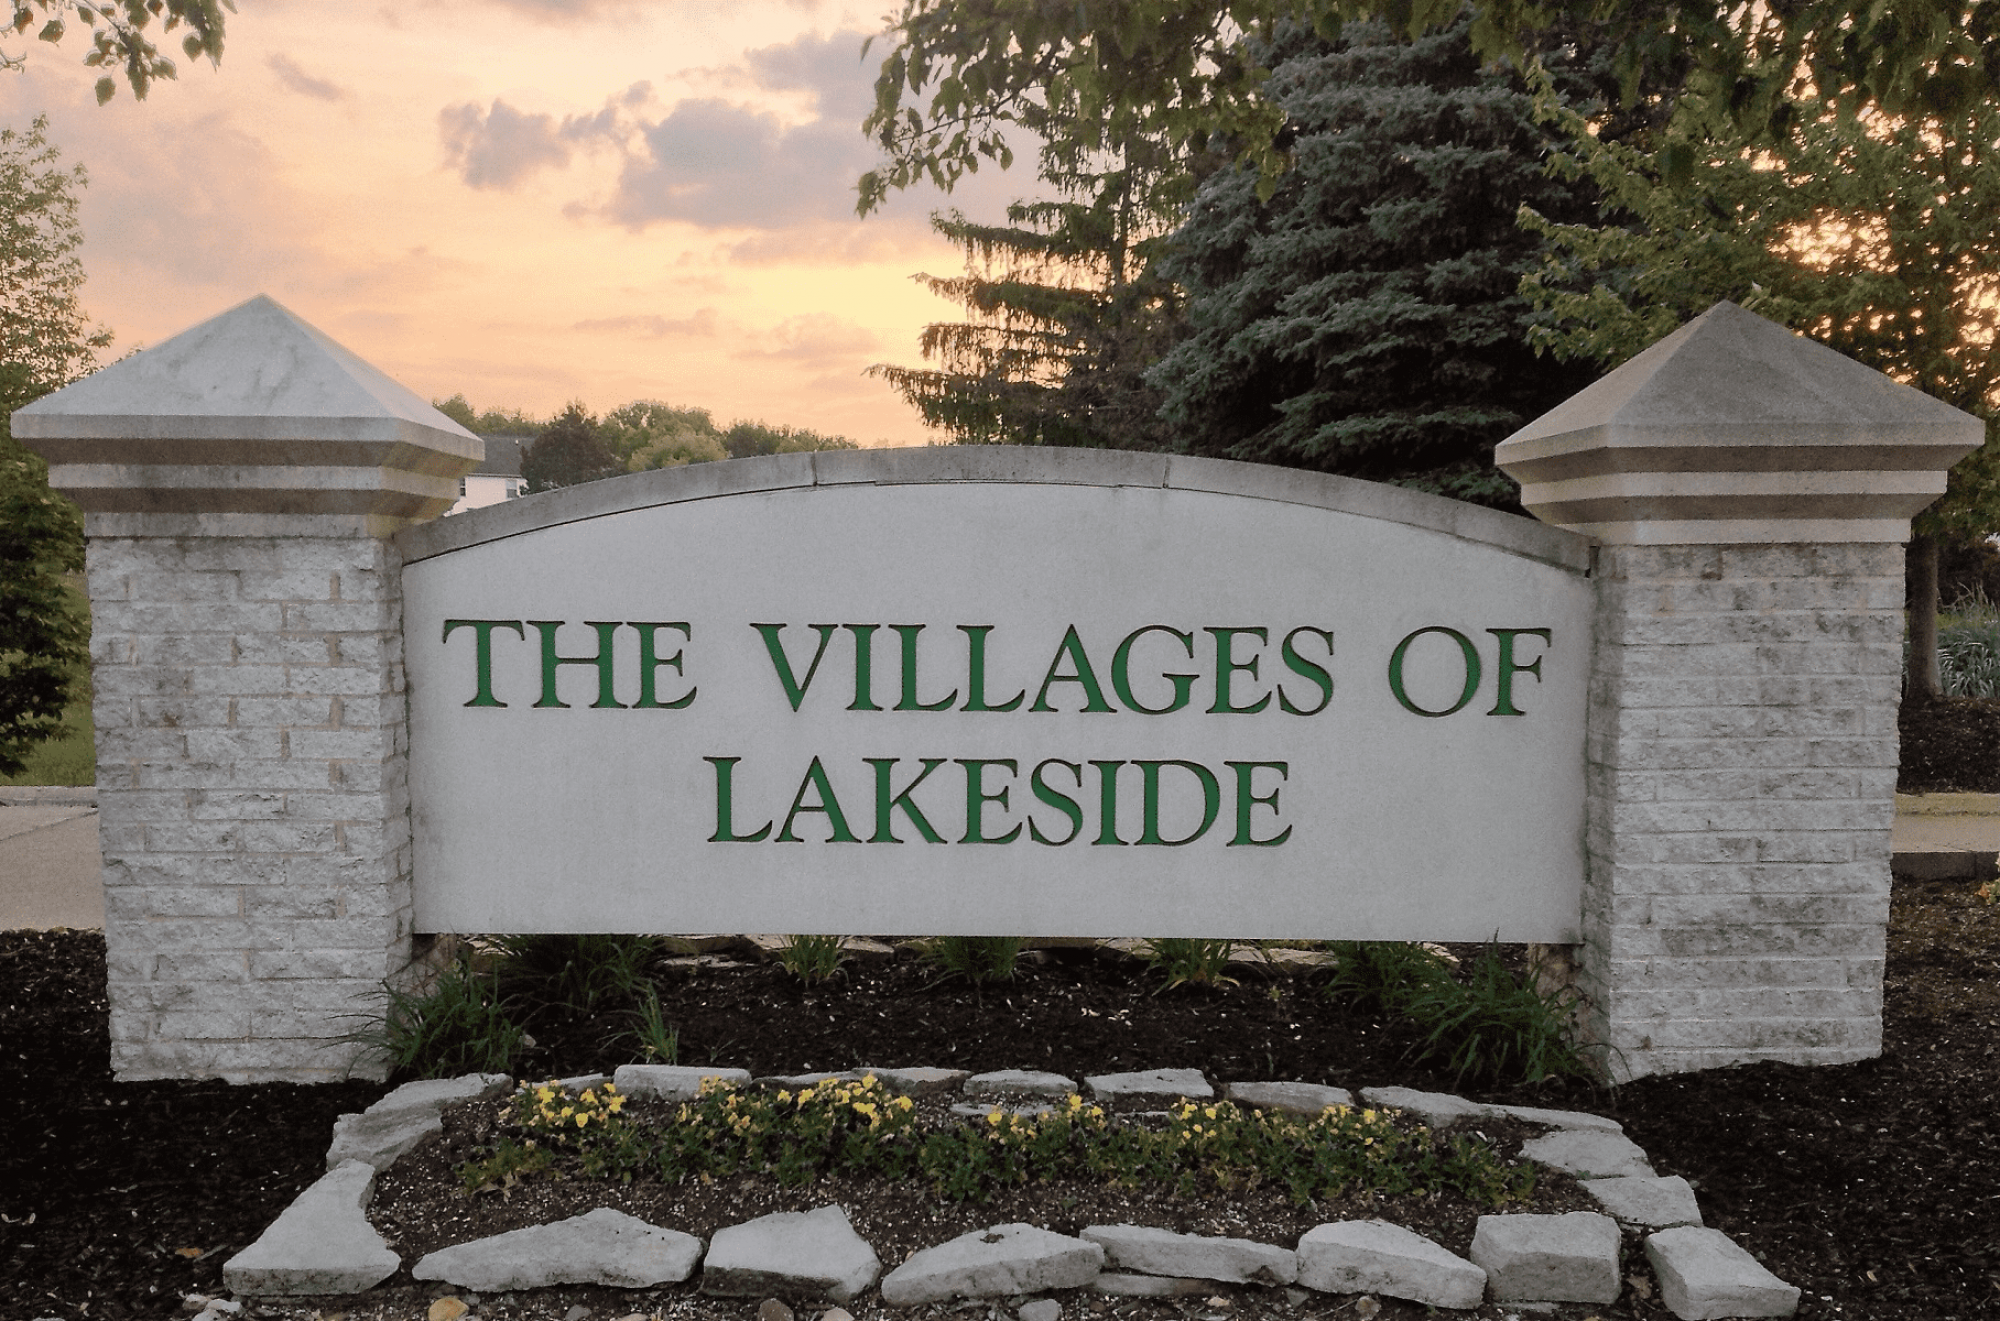 The Villages of Lakeside Homeowner's Association